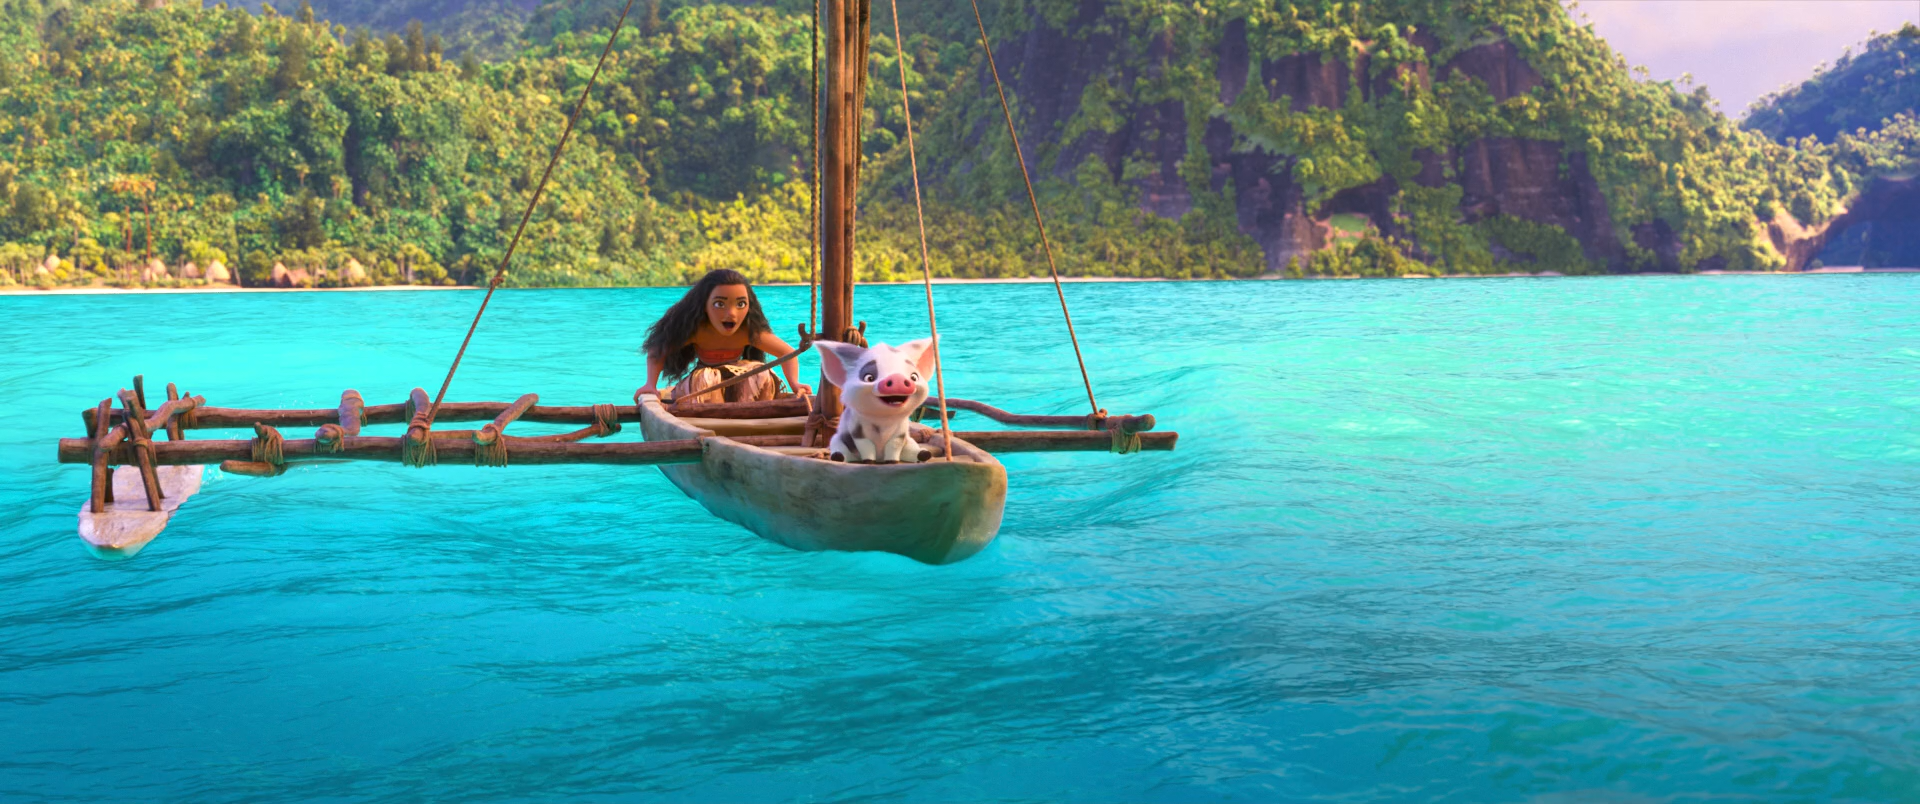 Моана / Moana (2016) BDRip 1080p | Лицензия